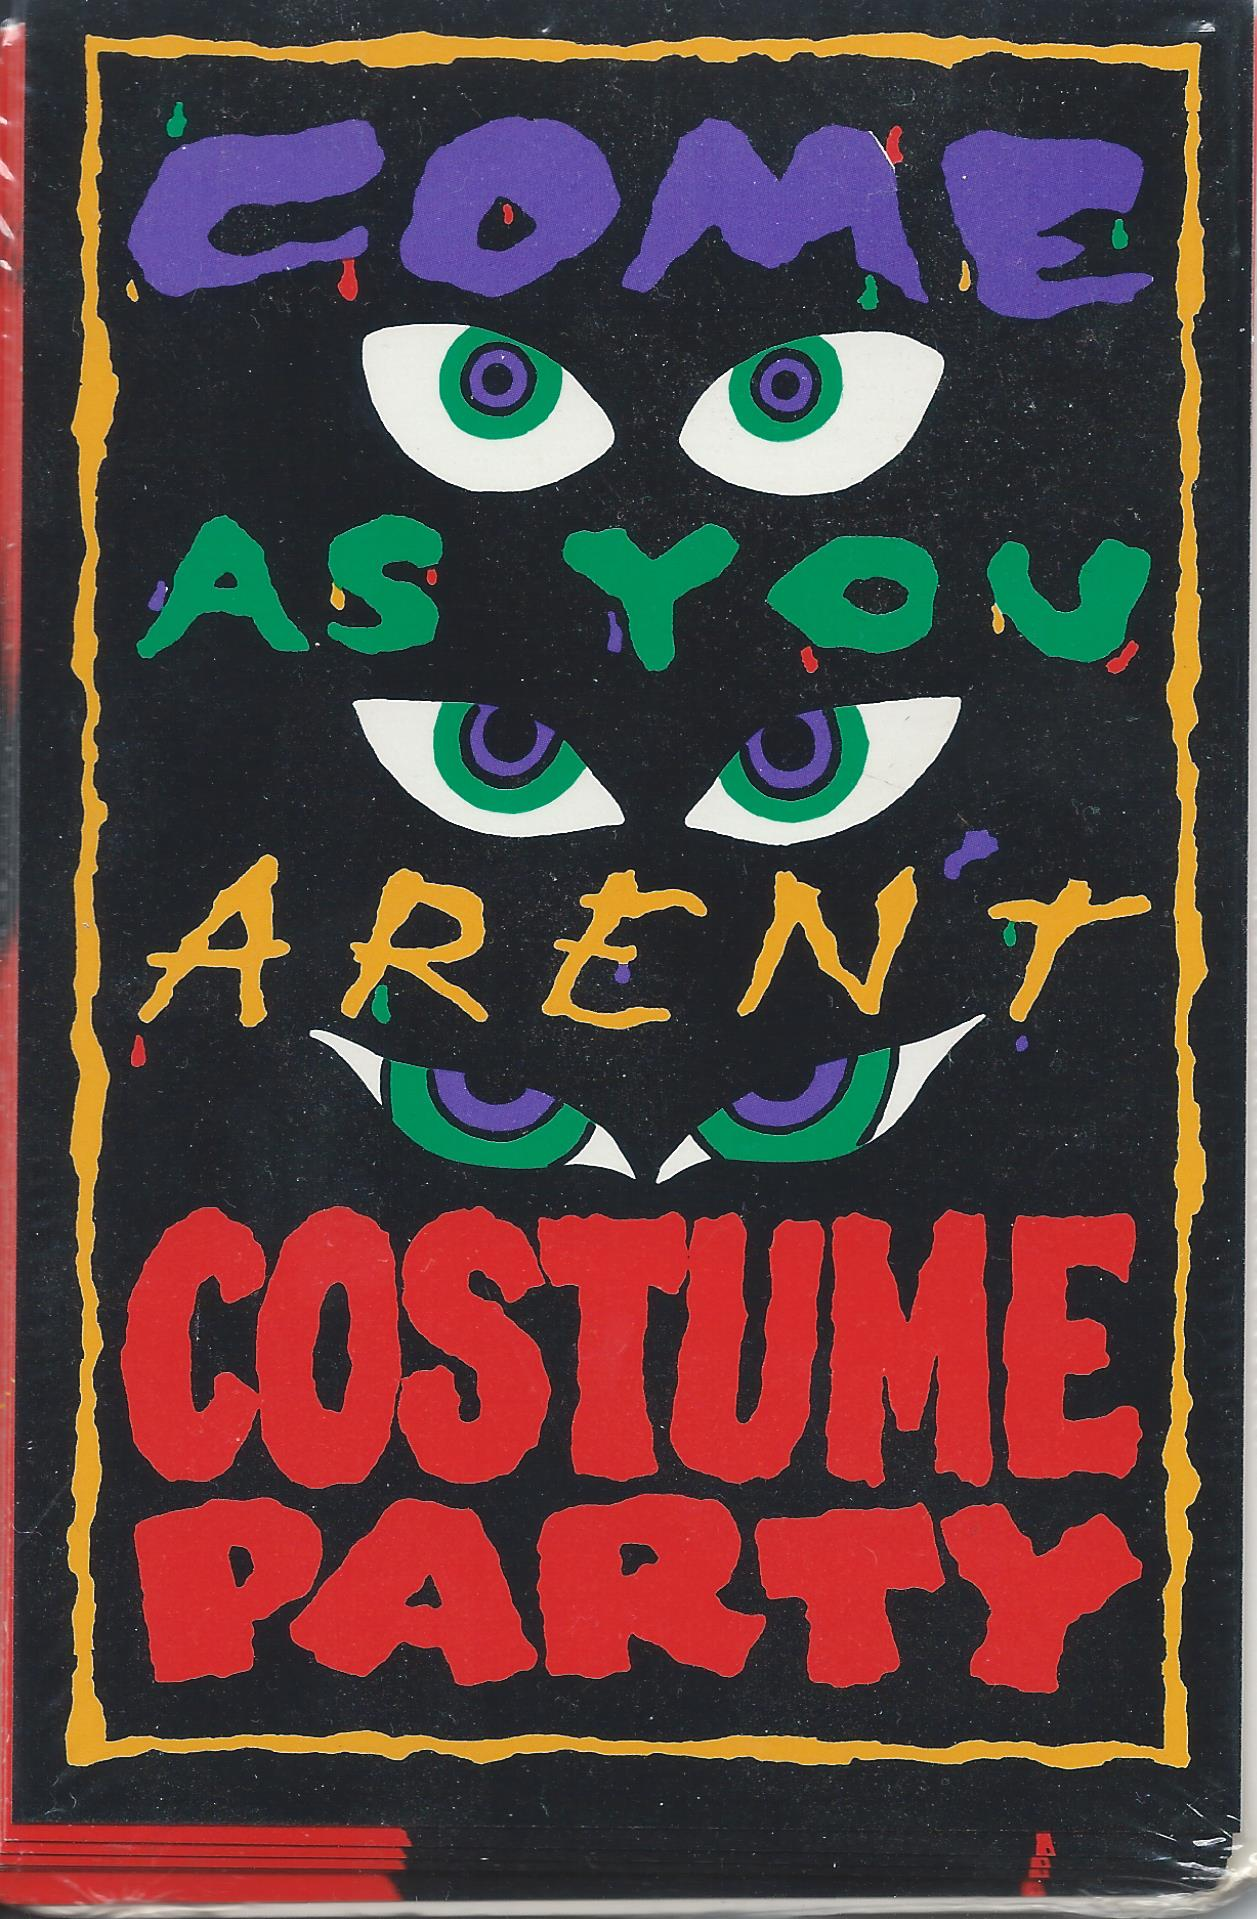 Come as you aren't costume party